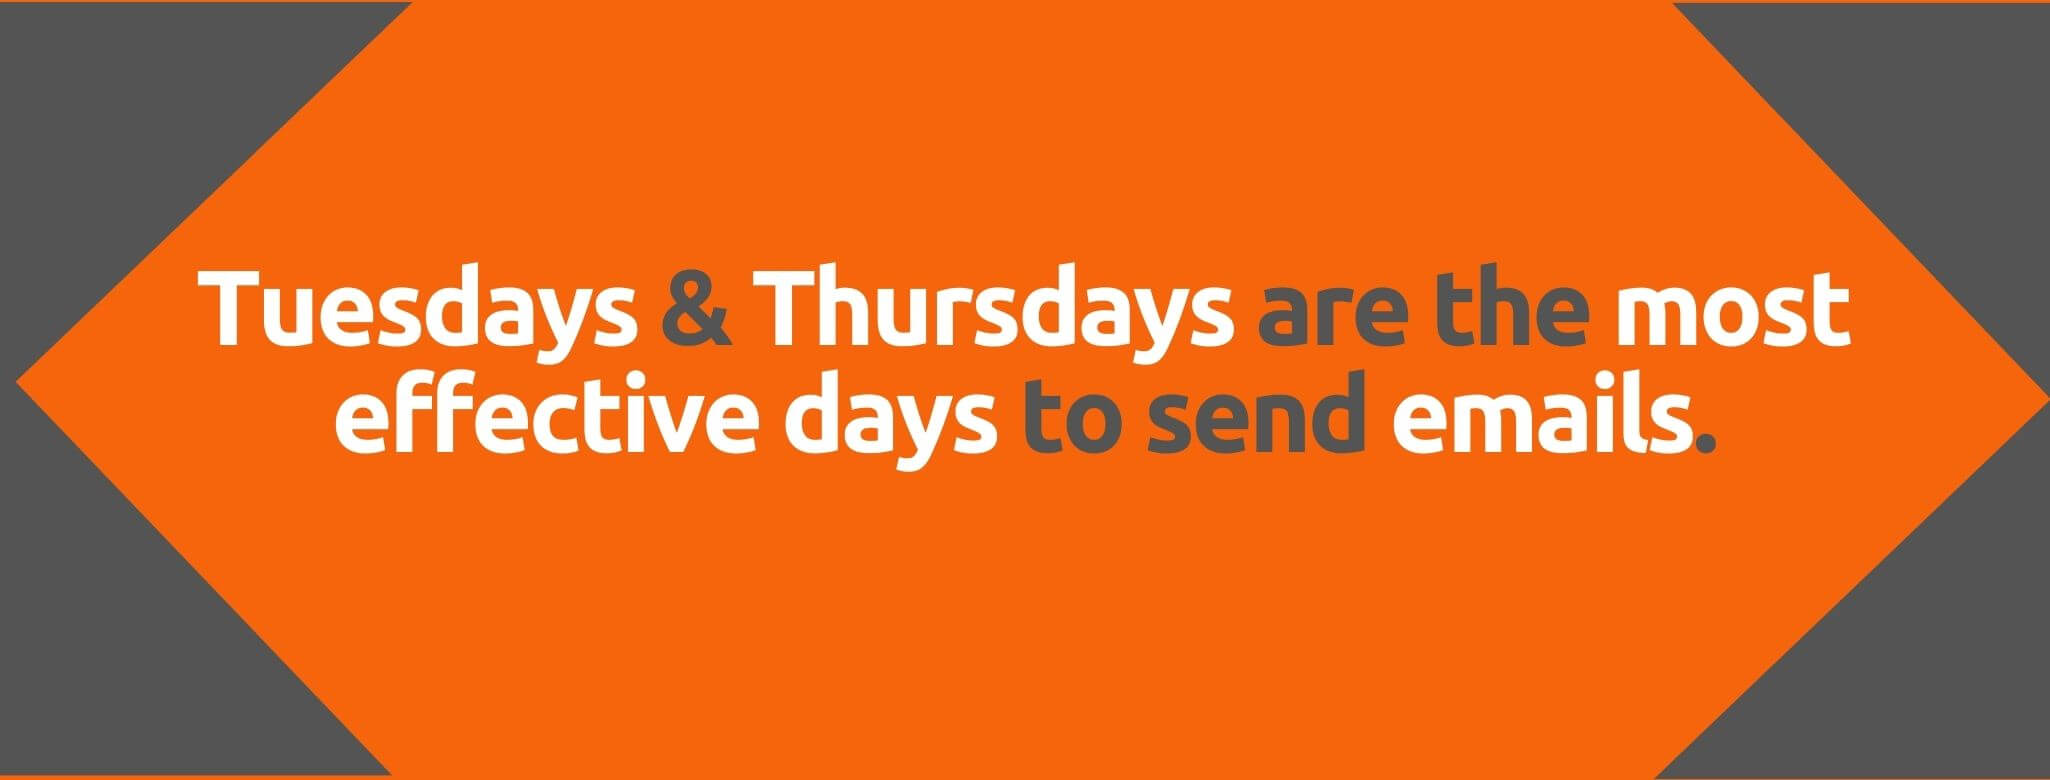 Tuesdays & Thursdays are the most effective days to send emails - 80+ Email Marketing Stats - Replyco Helpdesk Software for eCommerce